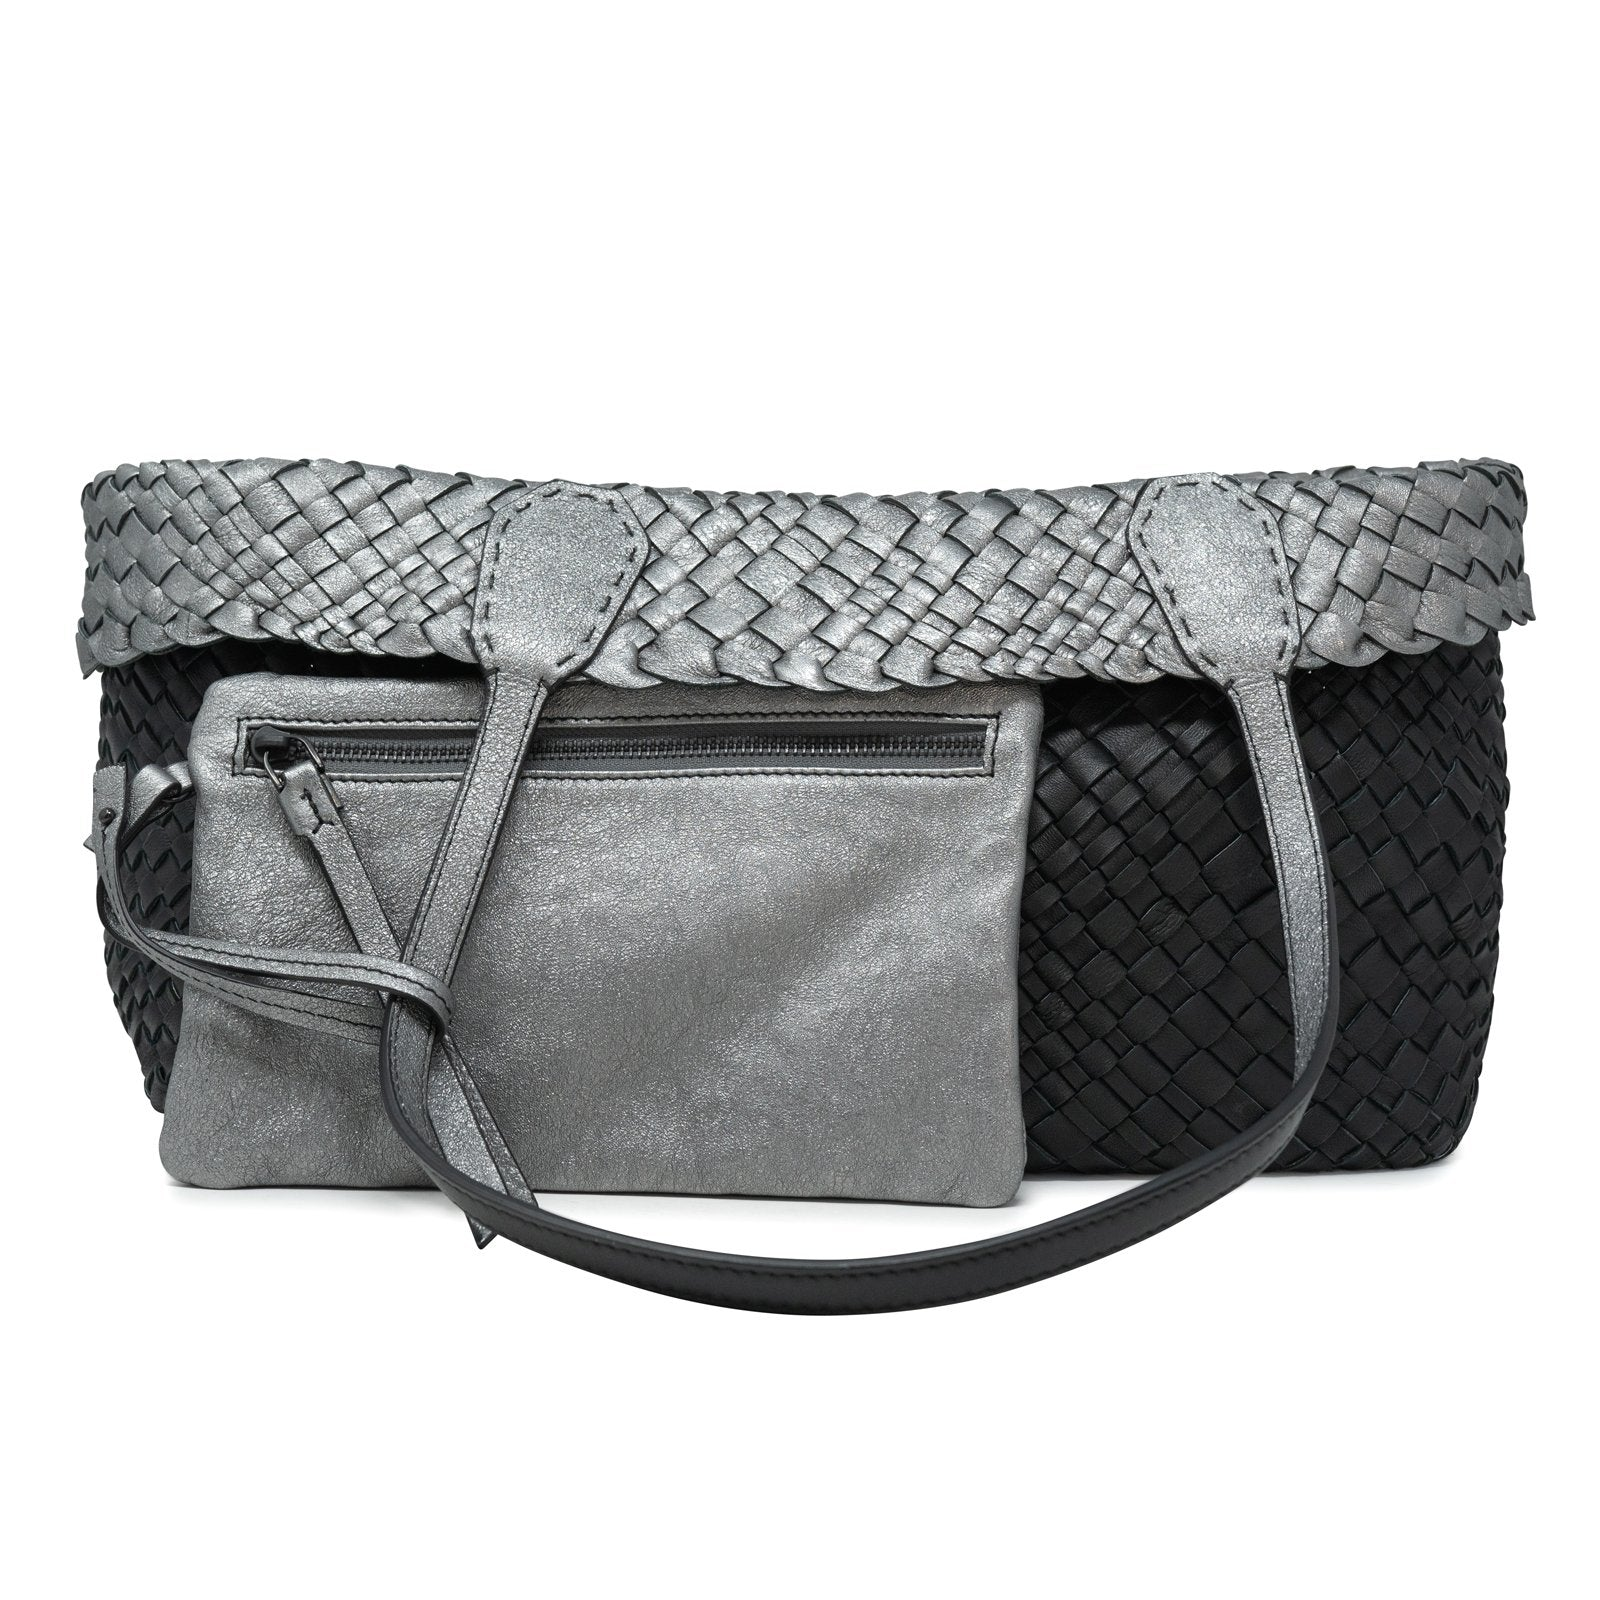 Women Intrecciato Optical Reversible Shopping Bag in Black and Silver - Jennifer Tattanelli